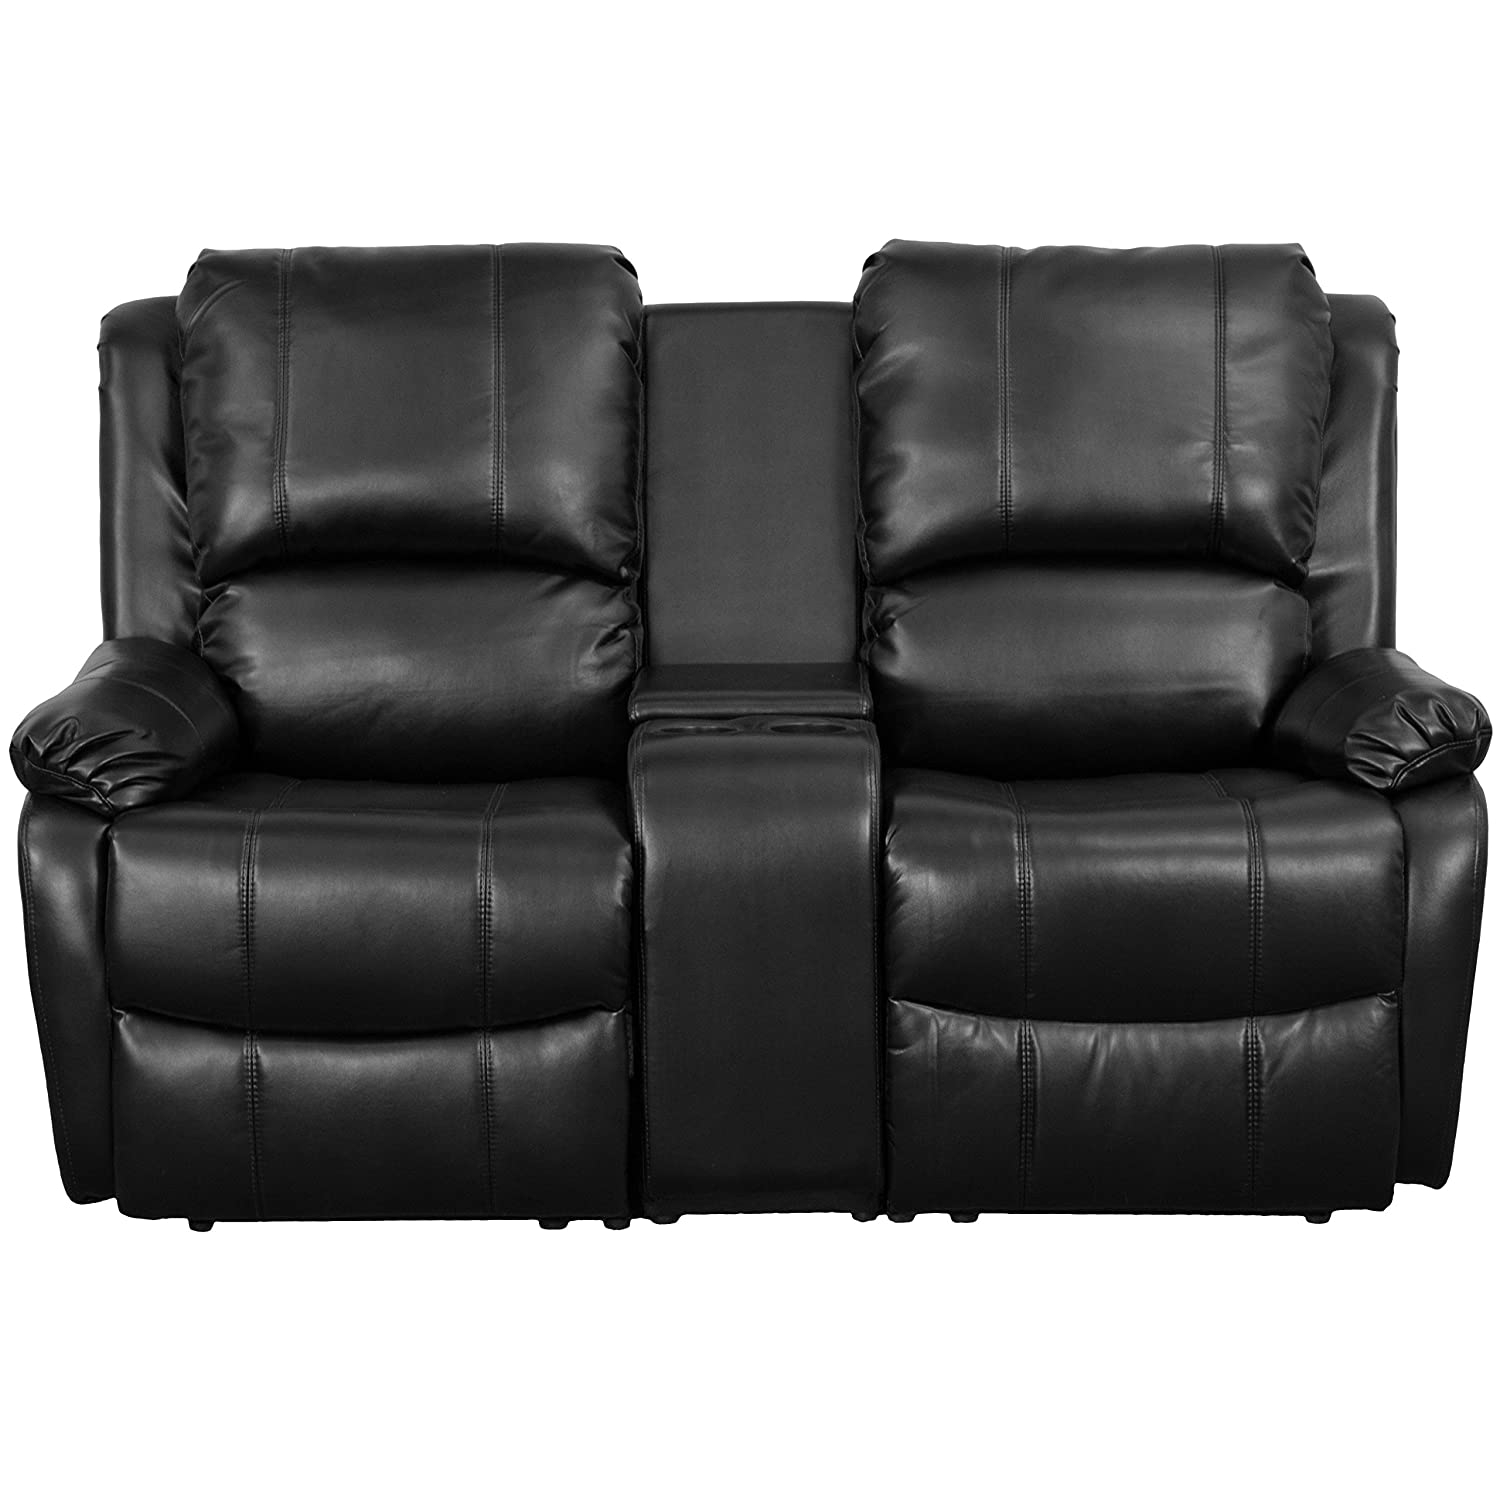 Amazon.com Flash Furniture Allure Series 2-Seat Reclining Pillow Back Black Leather Theater Seating Unit with Cup Holders Kitchen u0026 Dining  sc 1 st  Amazon.com & Amazon.com: Flash Furniture Allure Series 2-Seat Reclining Pillow ... islam-shia.org